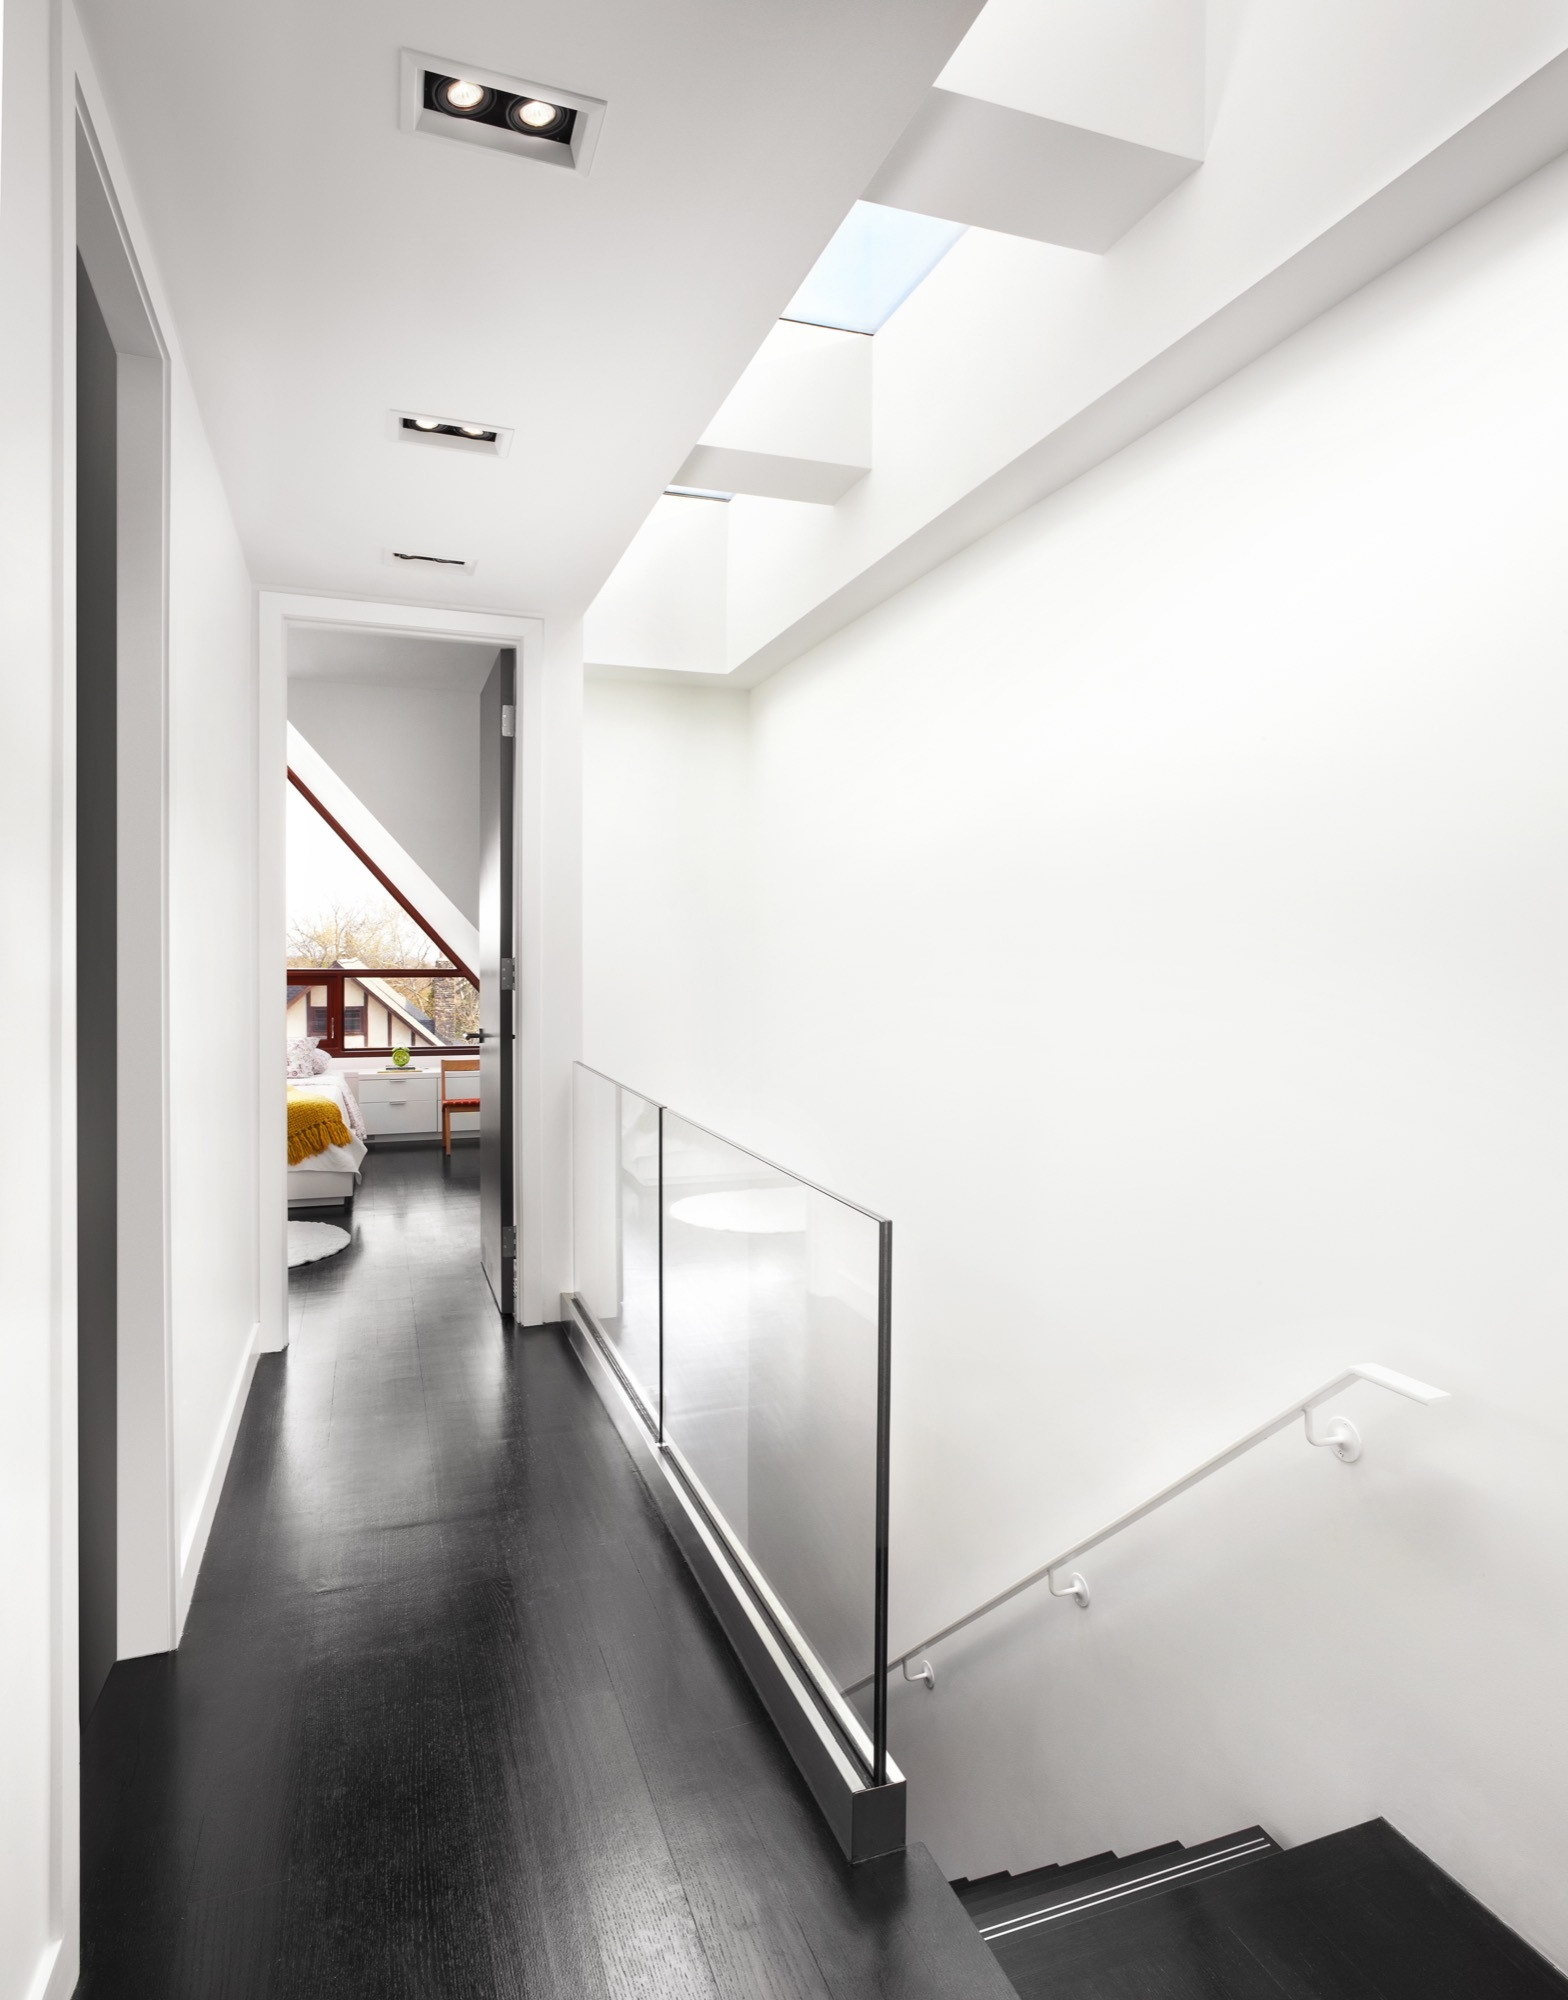 Zn House by +tongtong